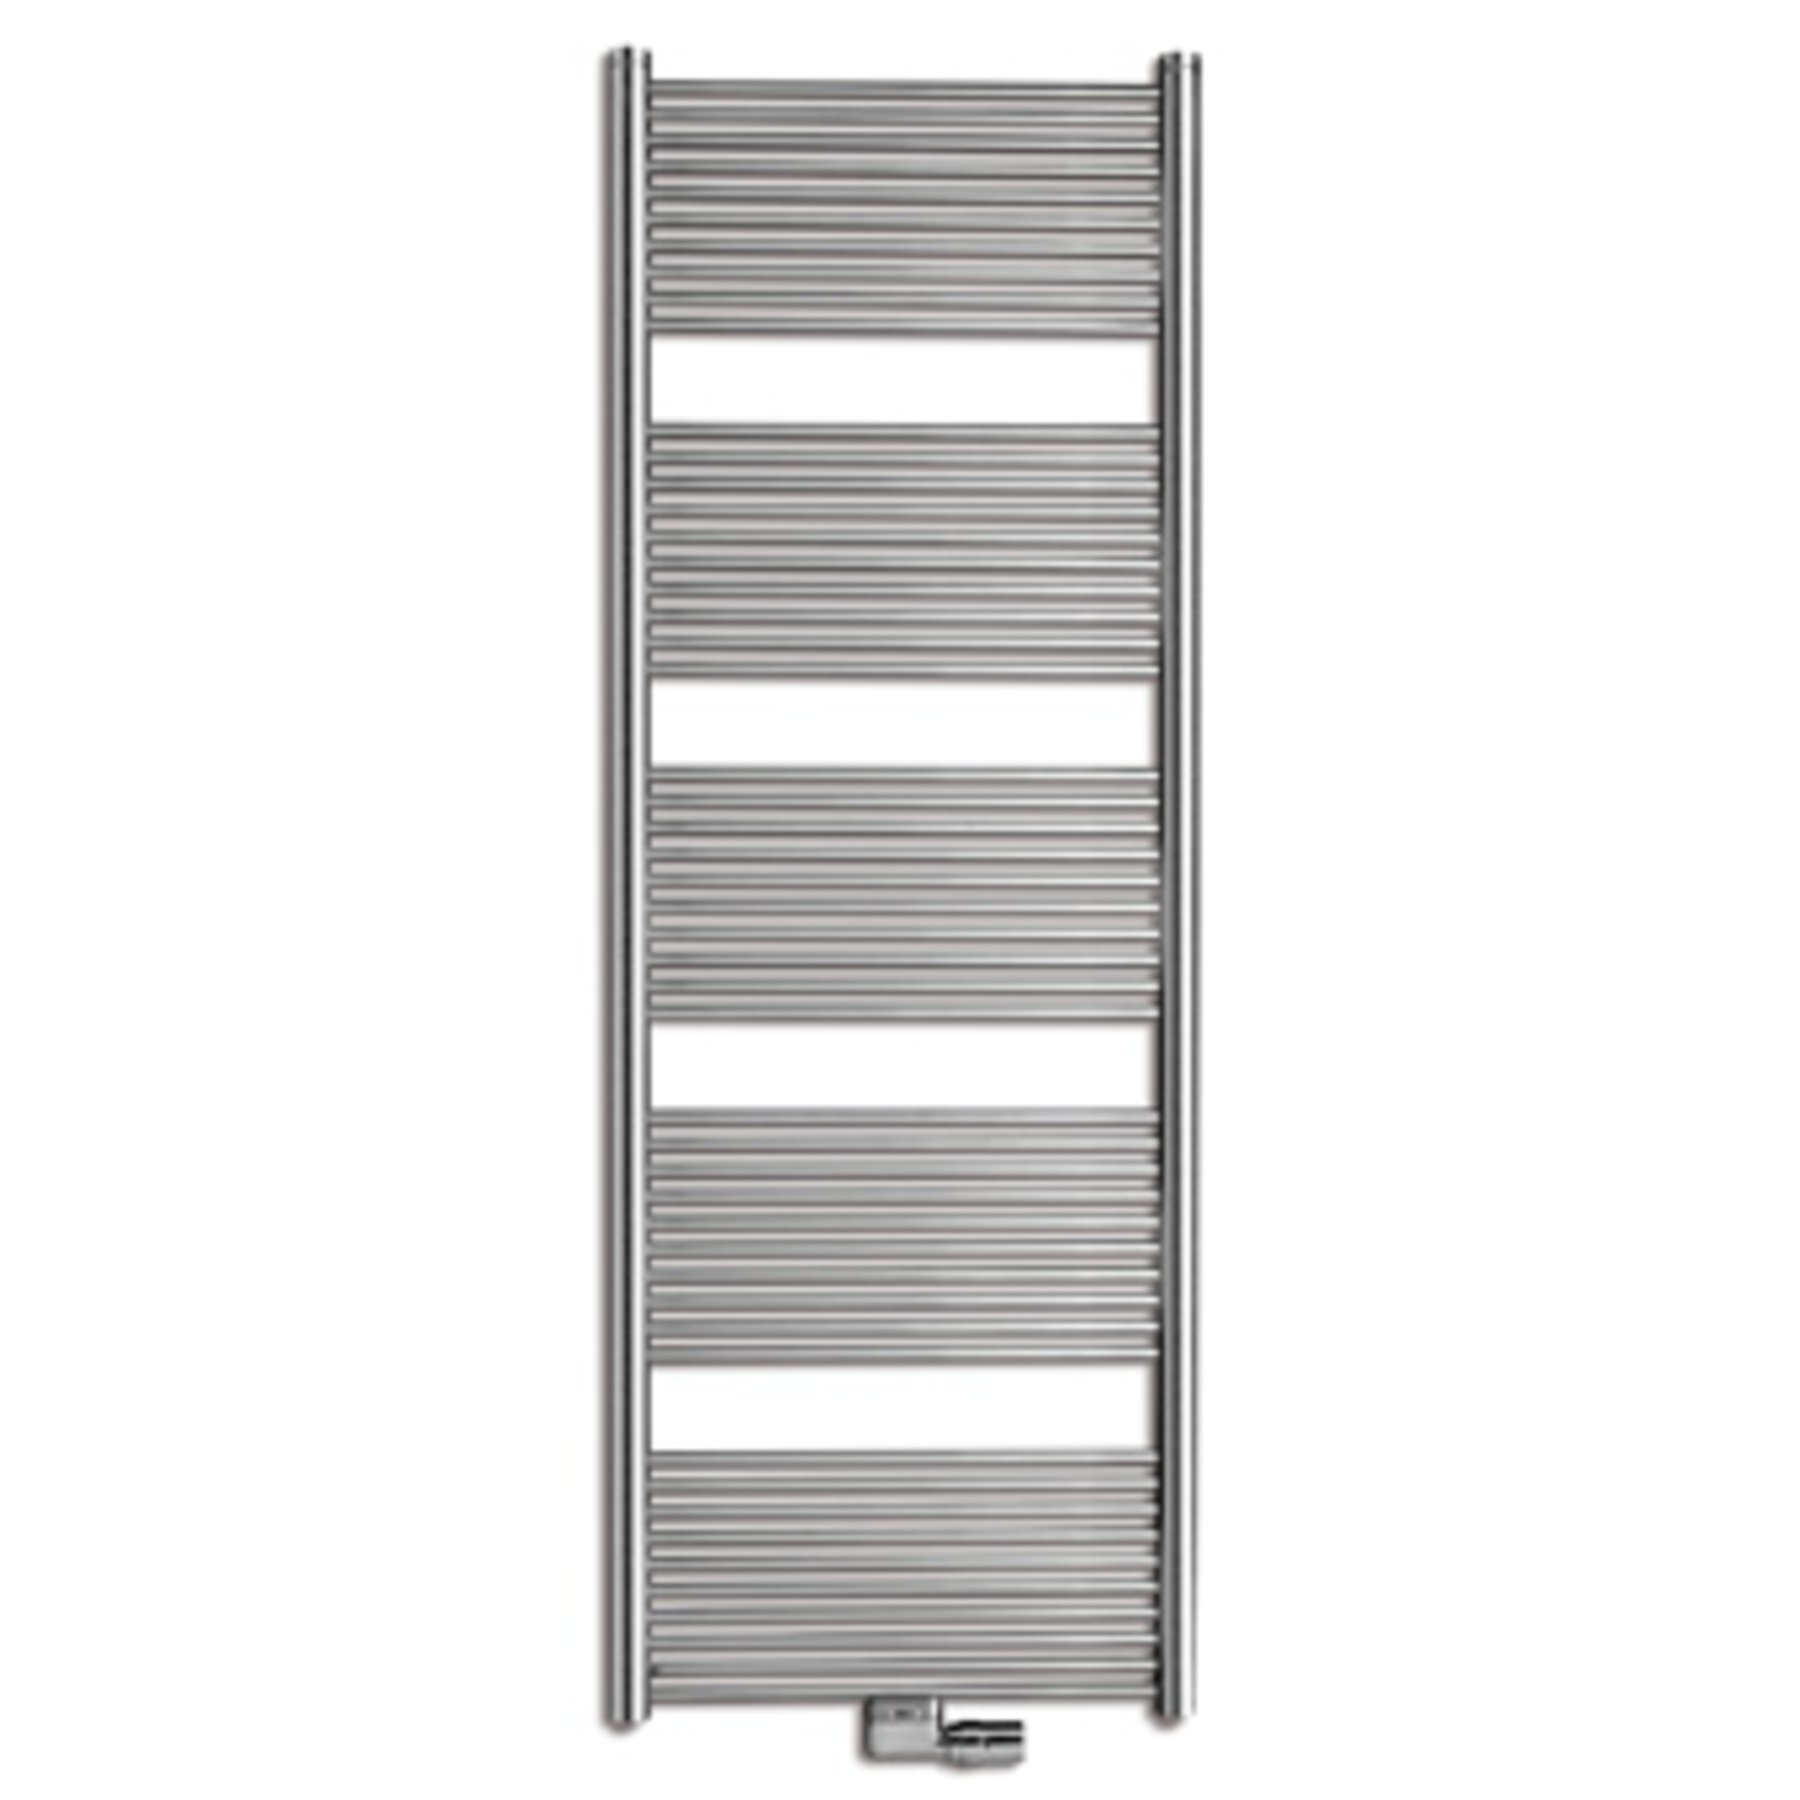 Vasco Bonsai BSRM S designradiator horizontaal 600x1338mm 816 watt warmgrijs (N506)